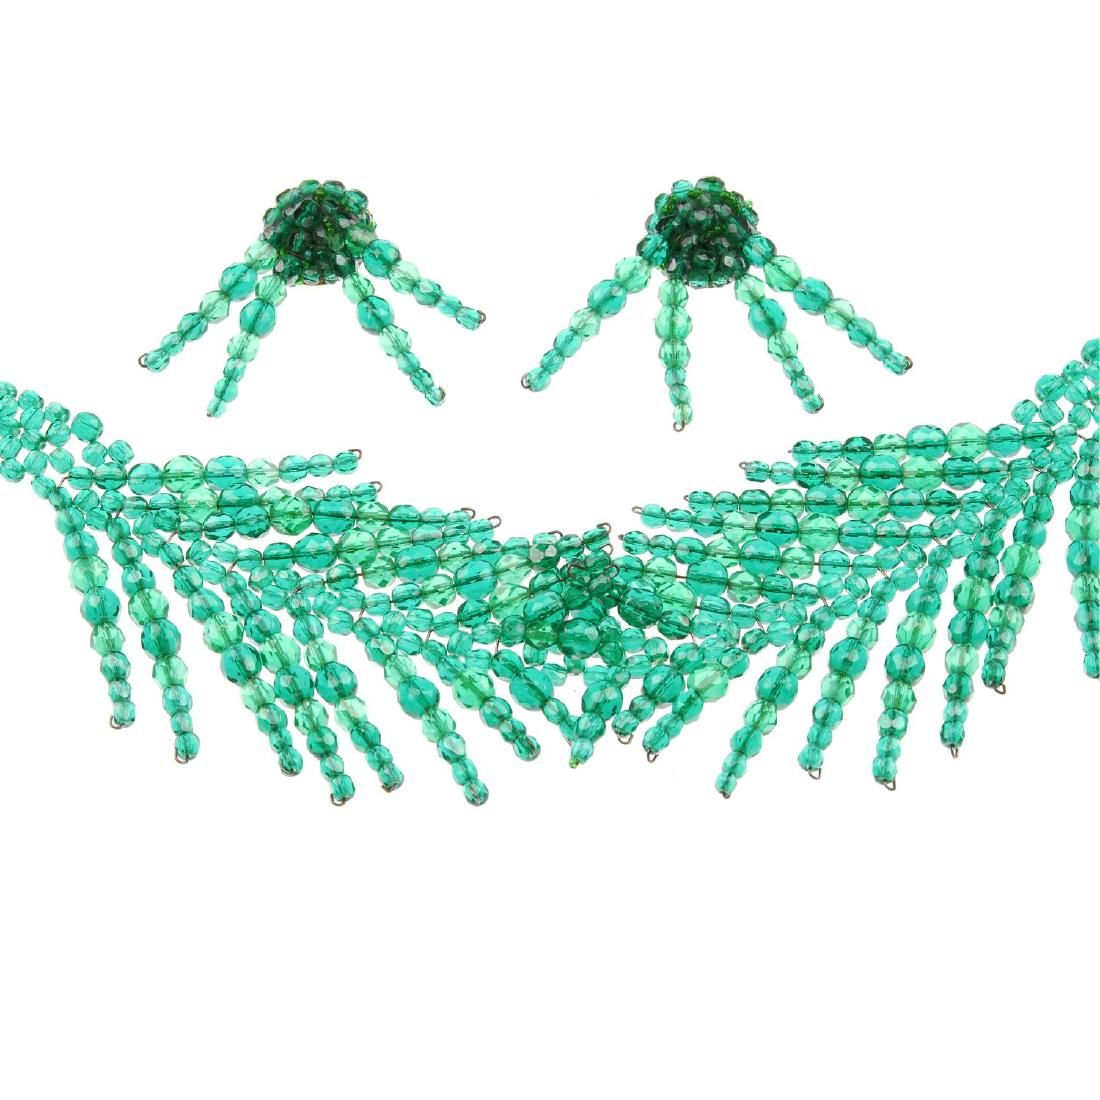 COPPOLA E TOPPO - a necklace with matching earrings.